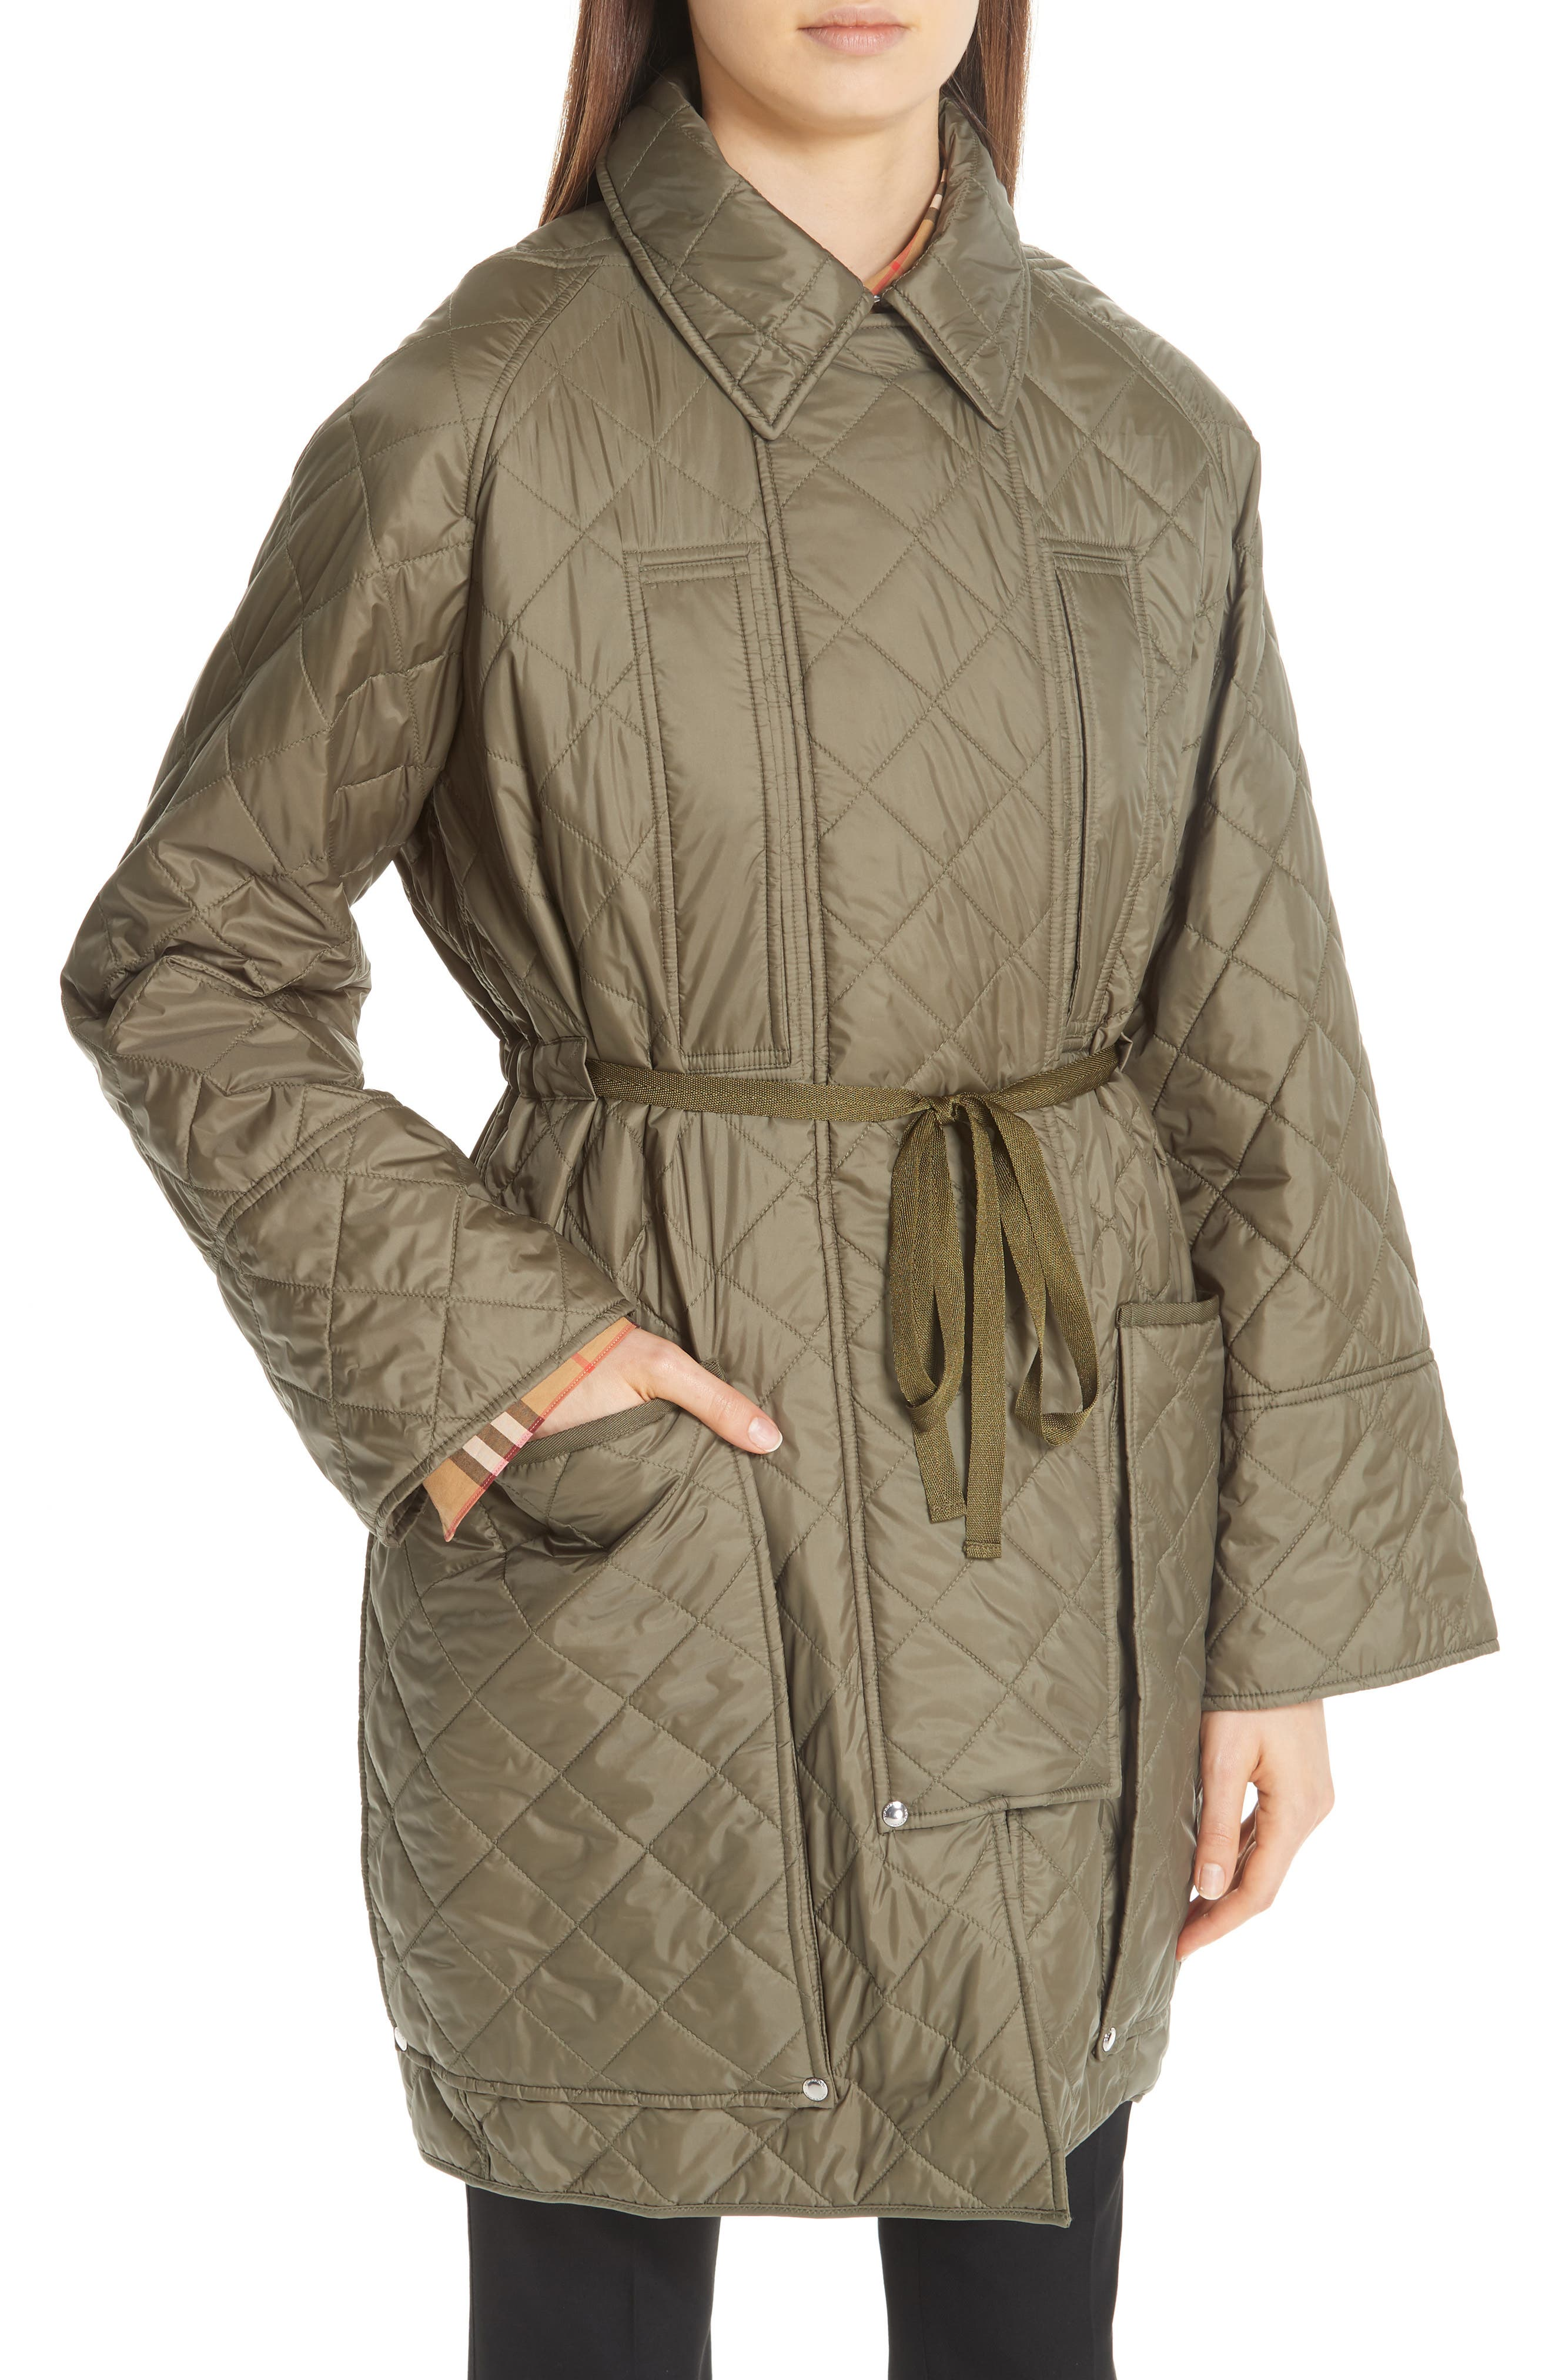 Coleraine Quilted Drawstring Jacket,                             Alternate thumbnail 2, color,                             CADET GREEN